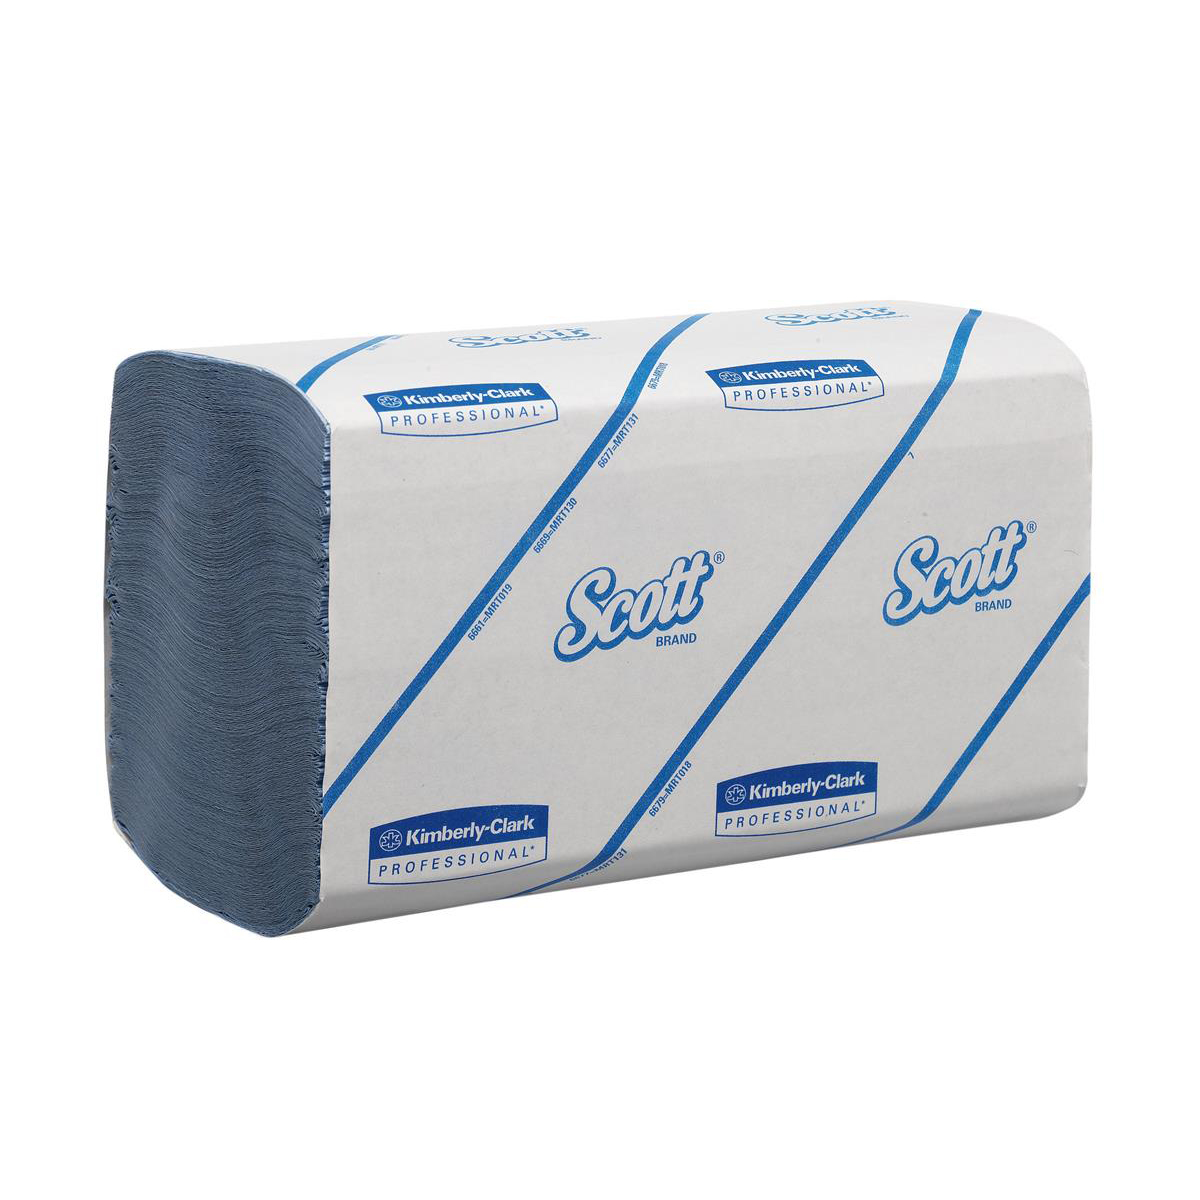 Scott Performance Hand Towels Blue 1 Ply 315x215mm 212 Towels per Sleeve Ref 6664 [Pack 15 Sleeves]